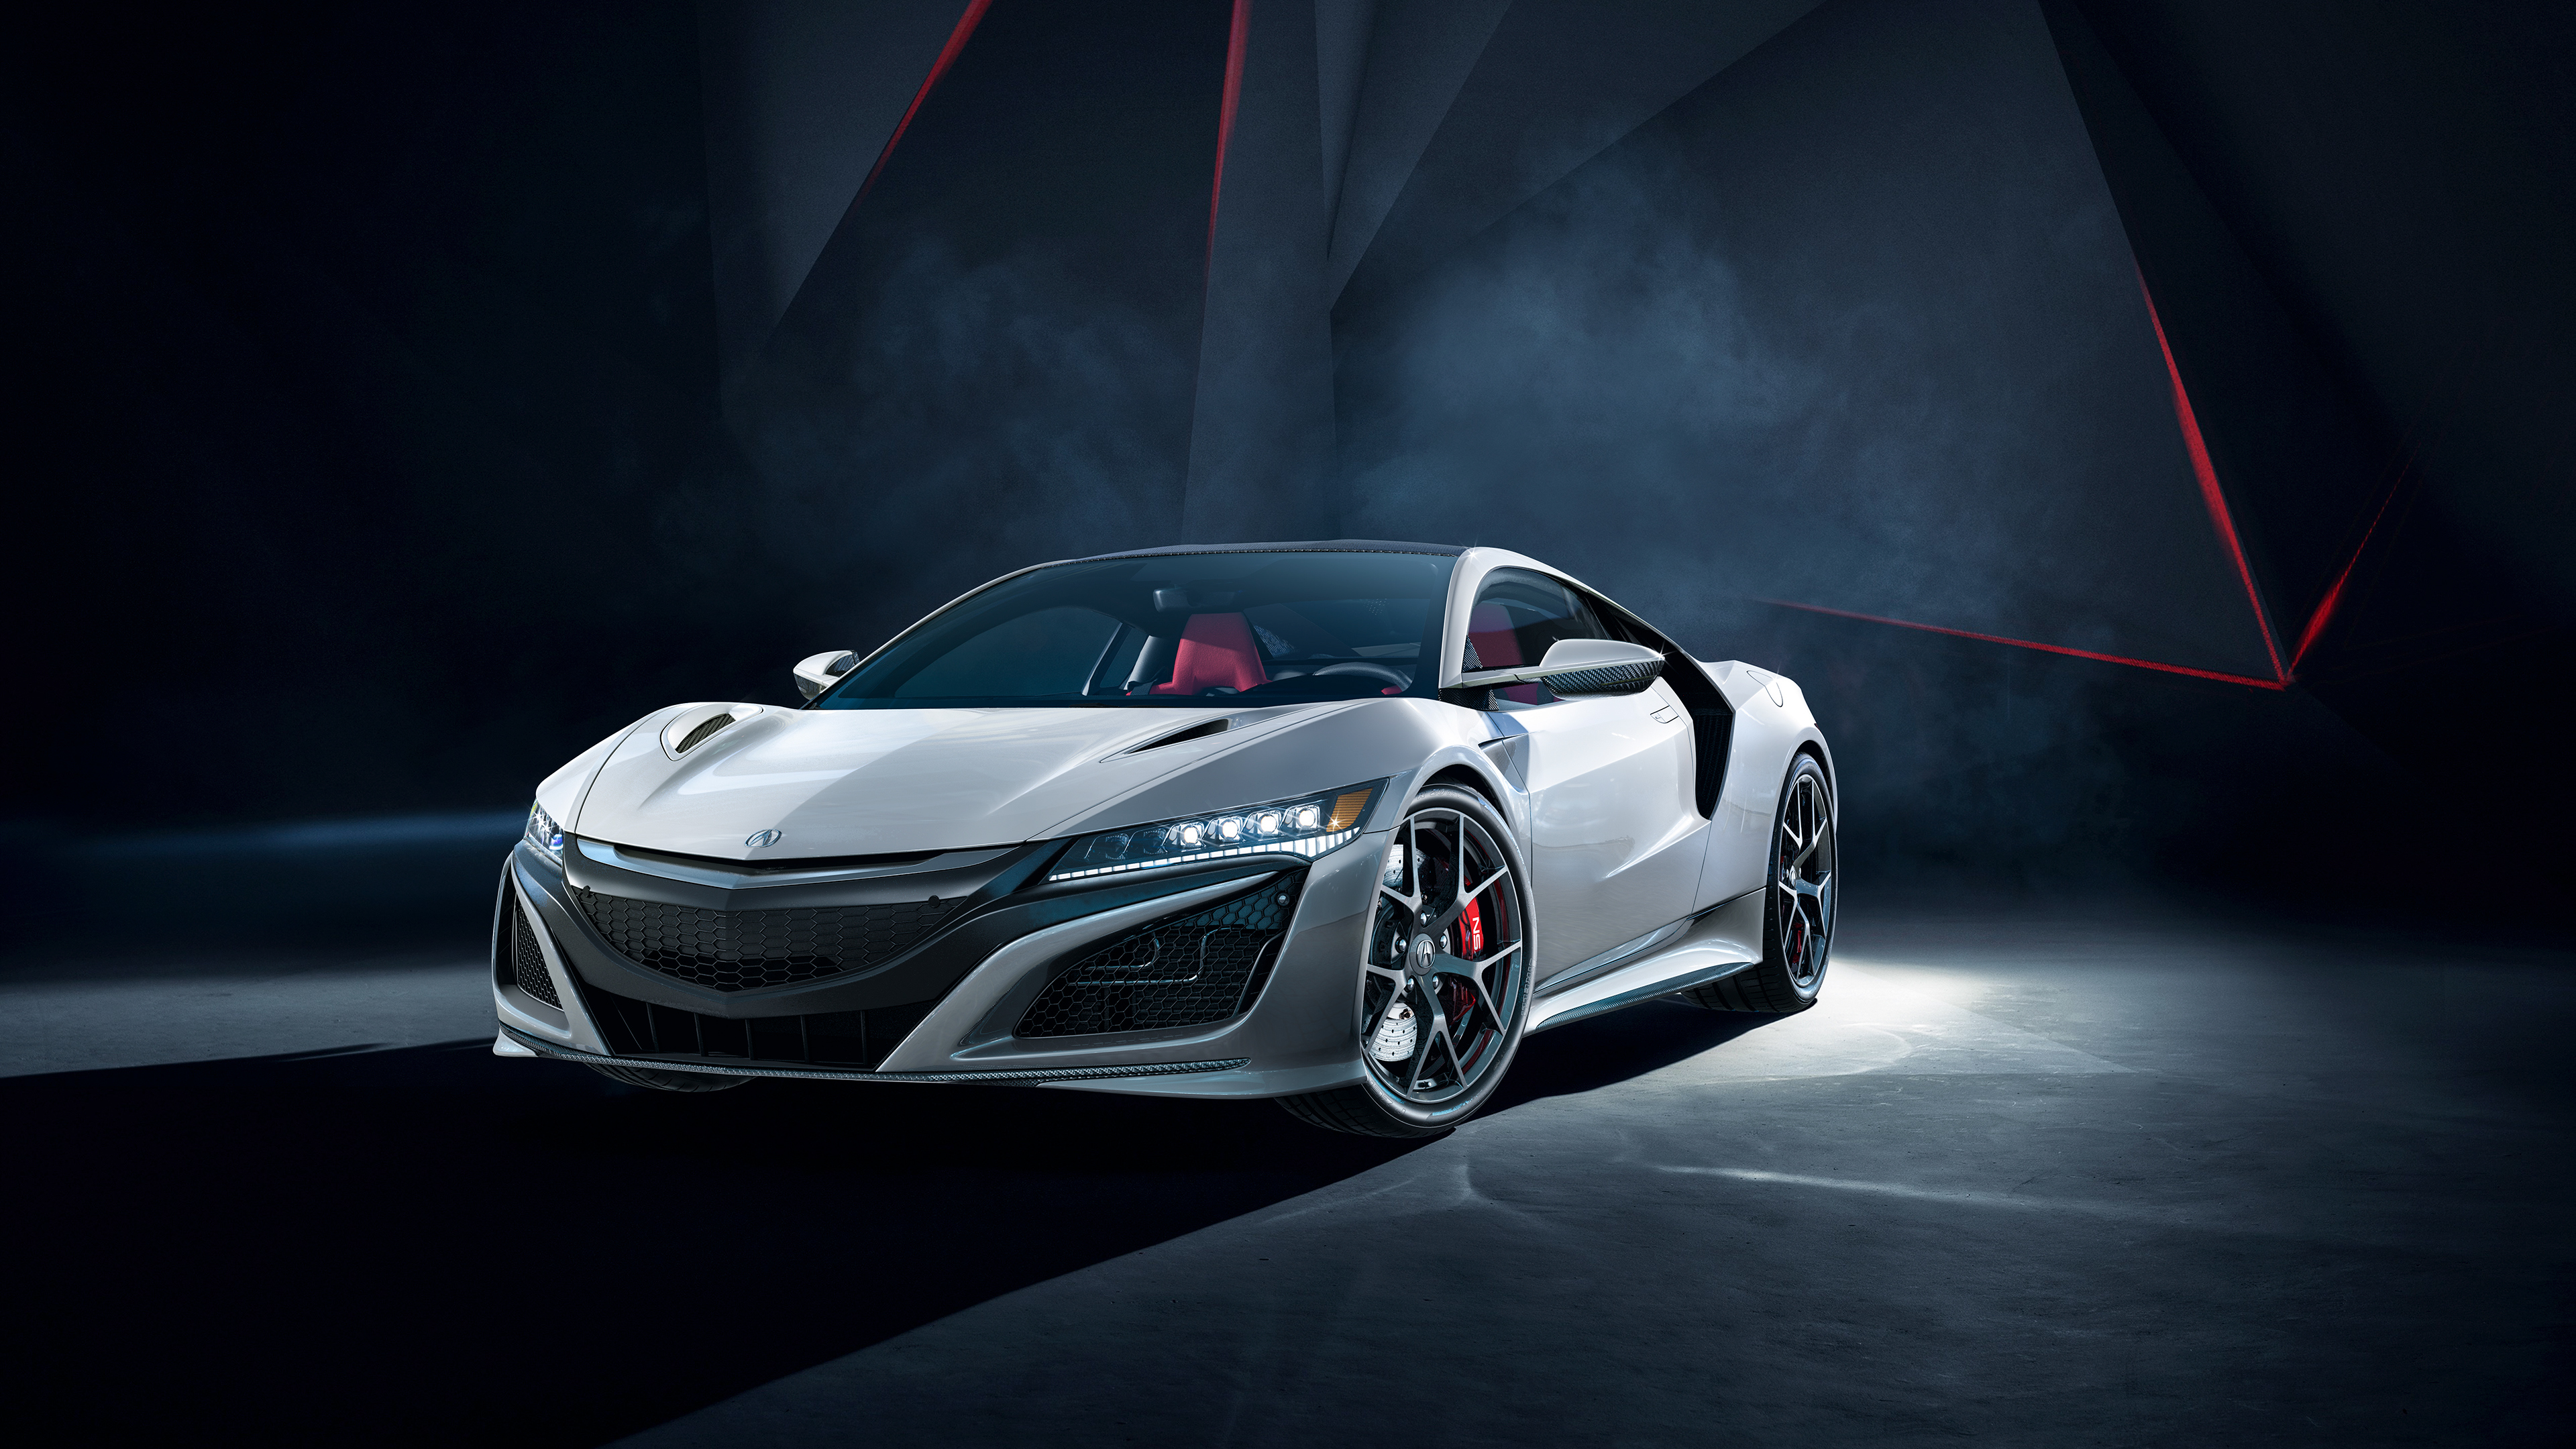 acura nsx 1562108030 - Acura NSX - hd-wallpapers, cars wallpapers, behance wallpapers, acura nsx wallpapers, 4k-wallpapers, 2019 cars wallpapers